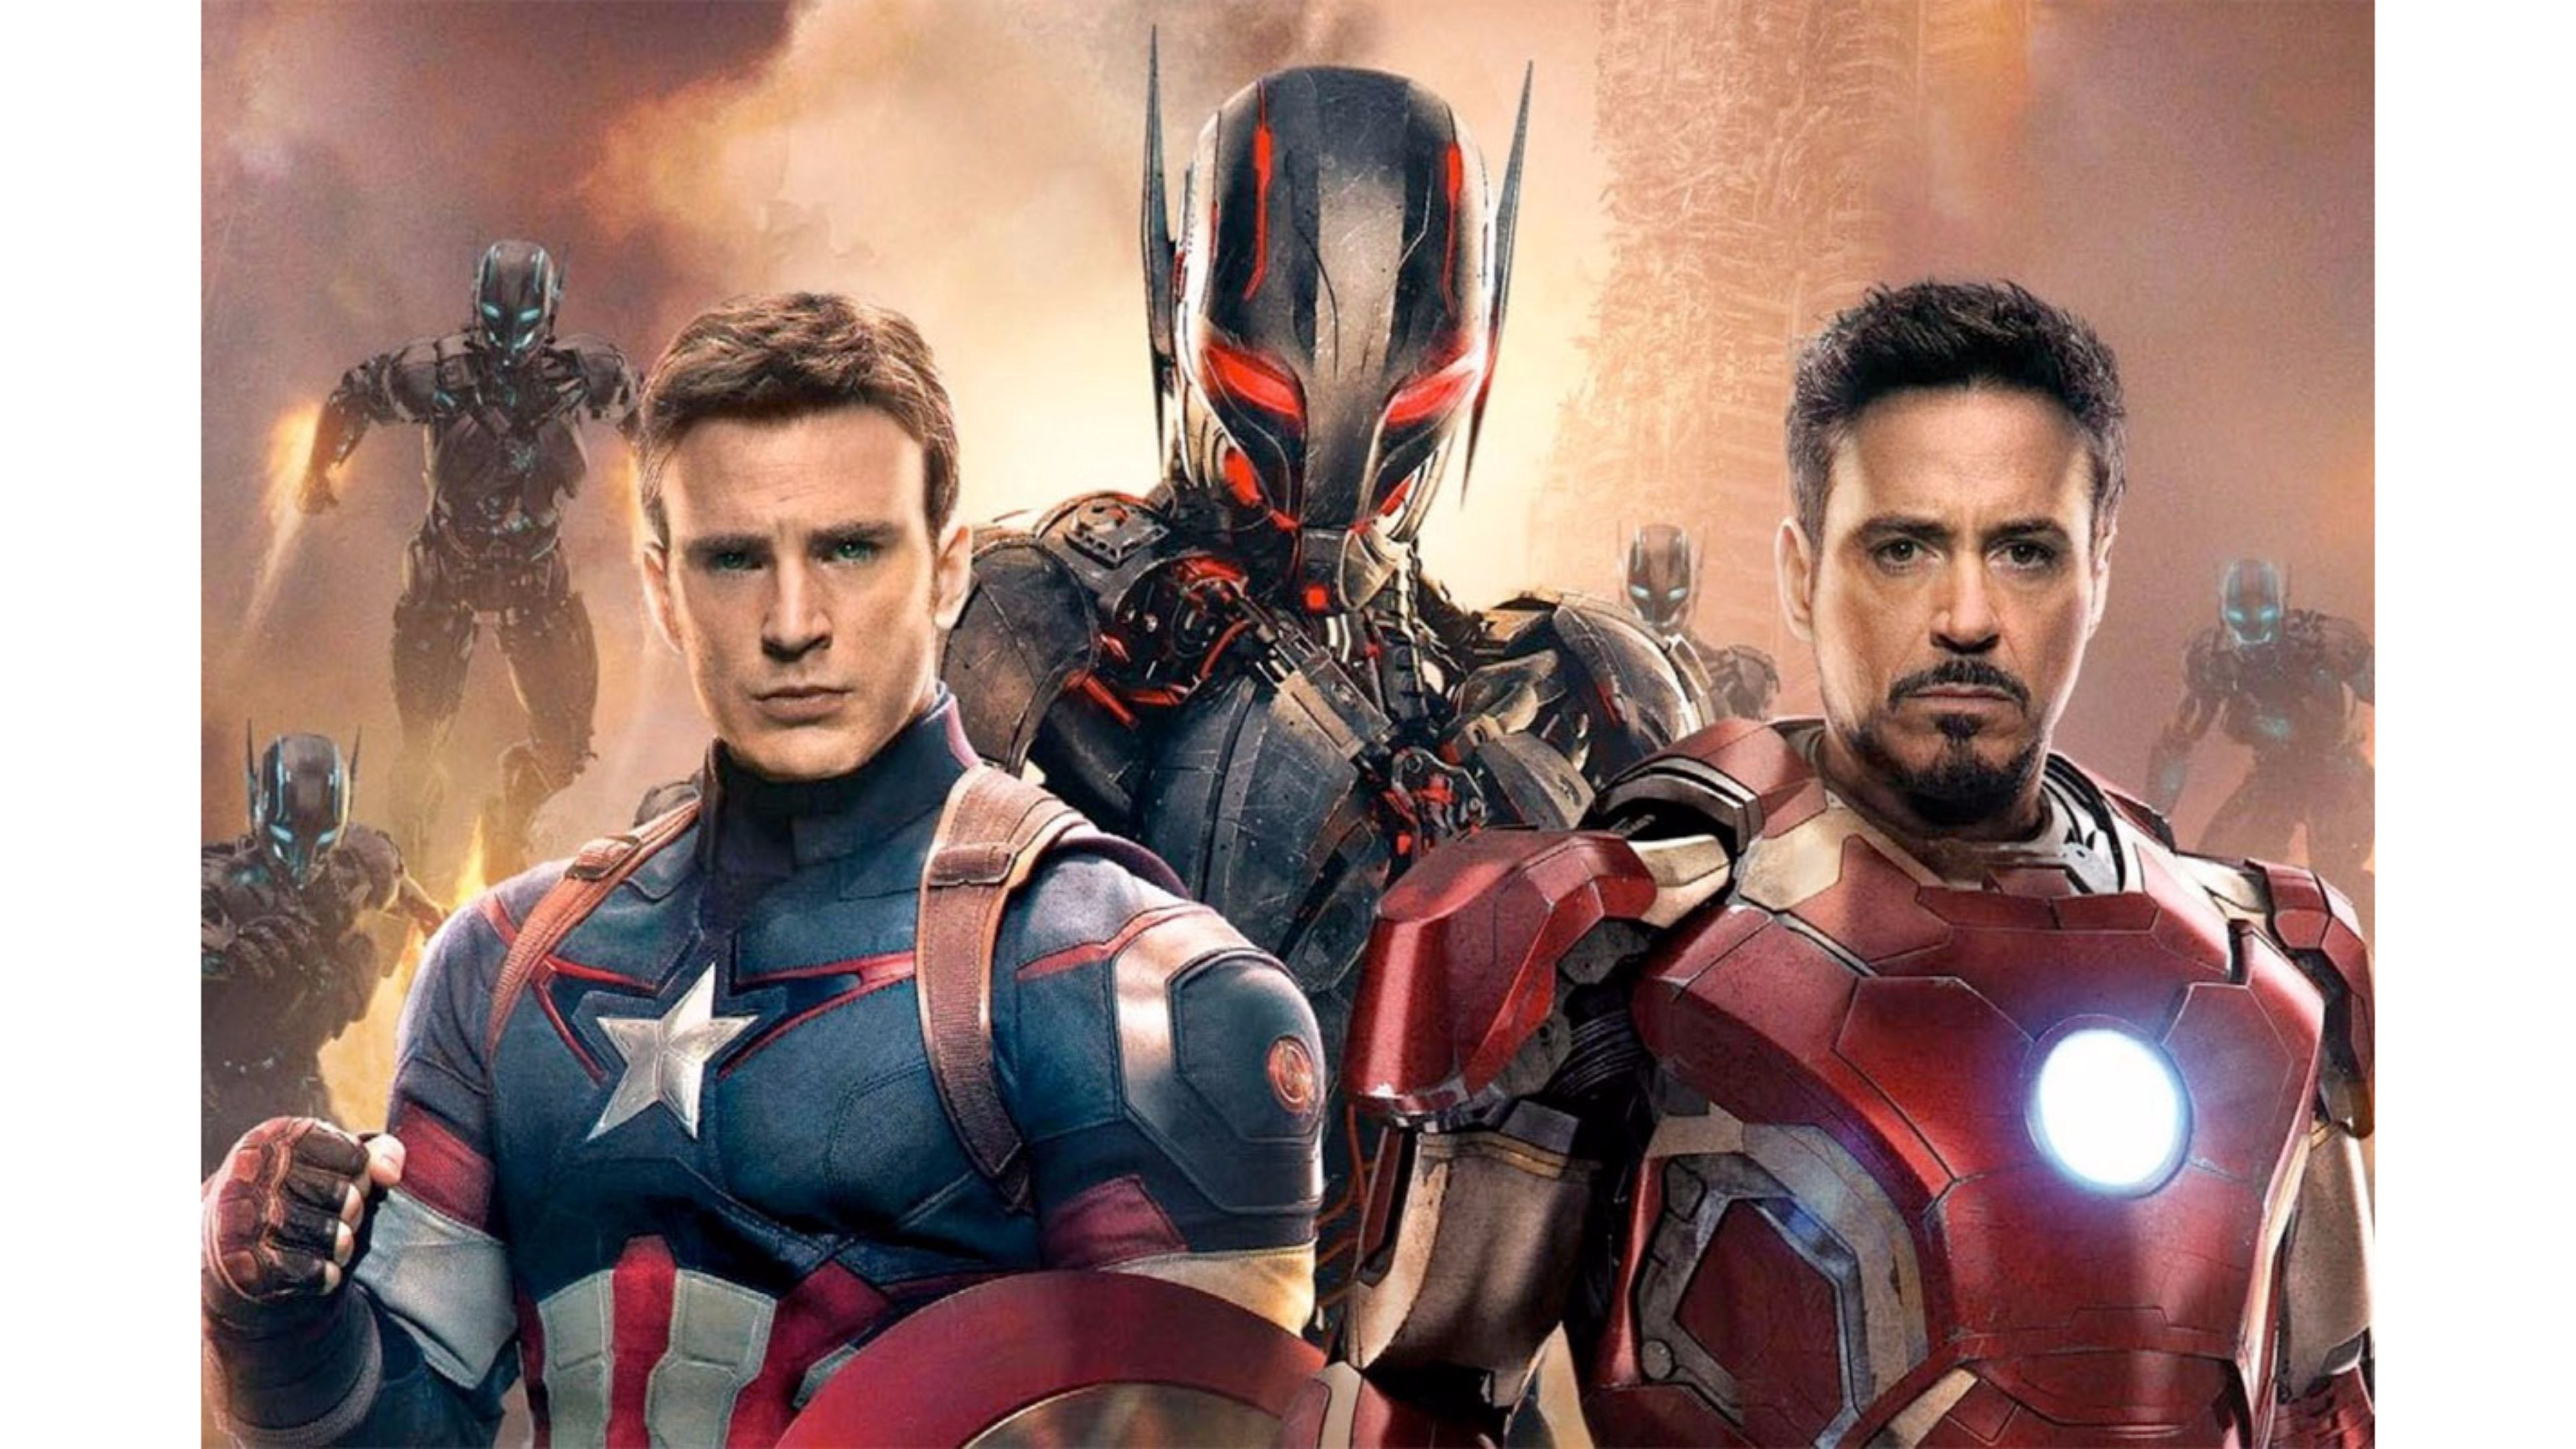 avengers wallpapers 11 - photo #26